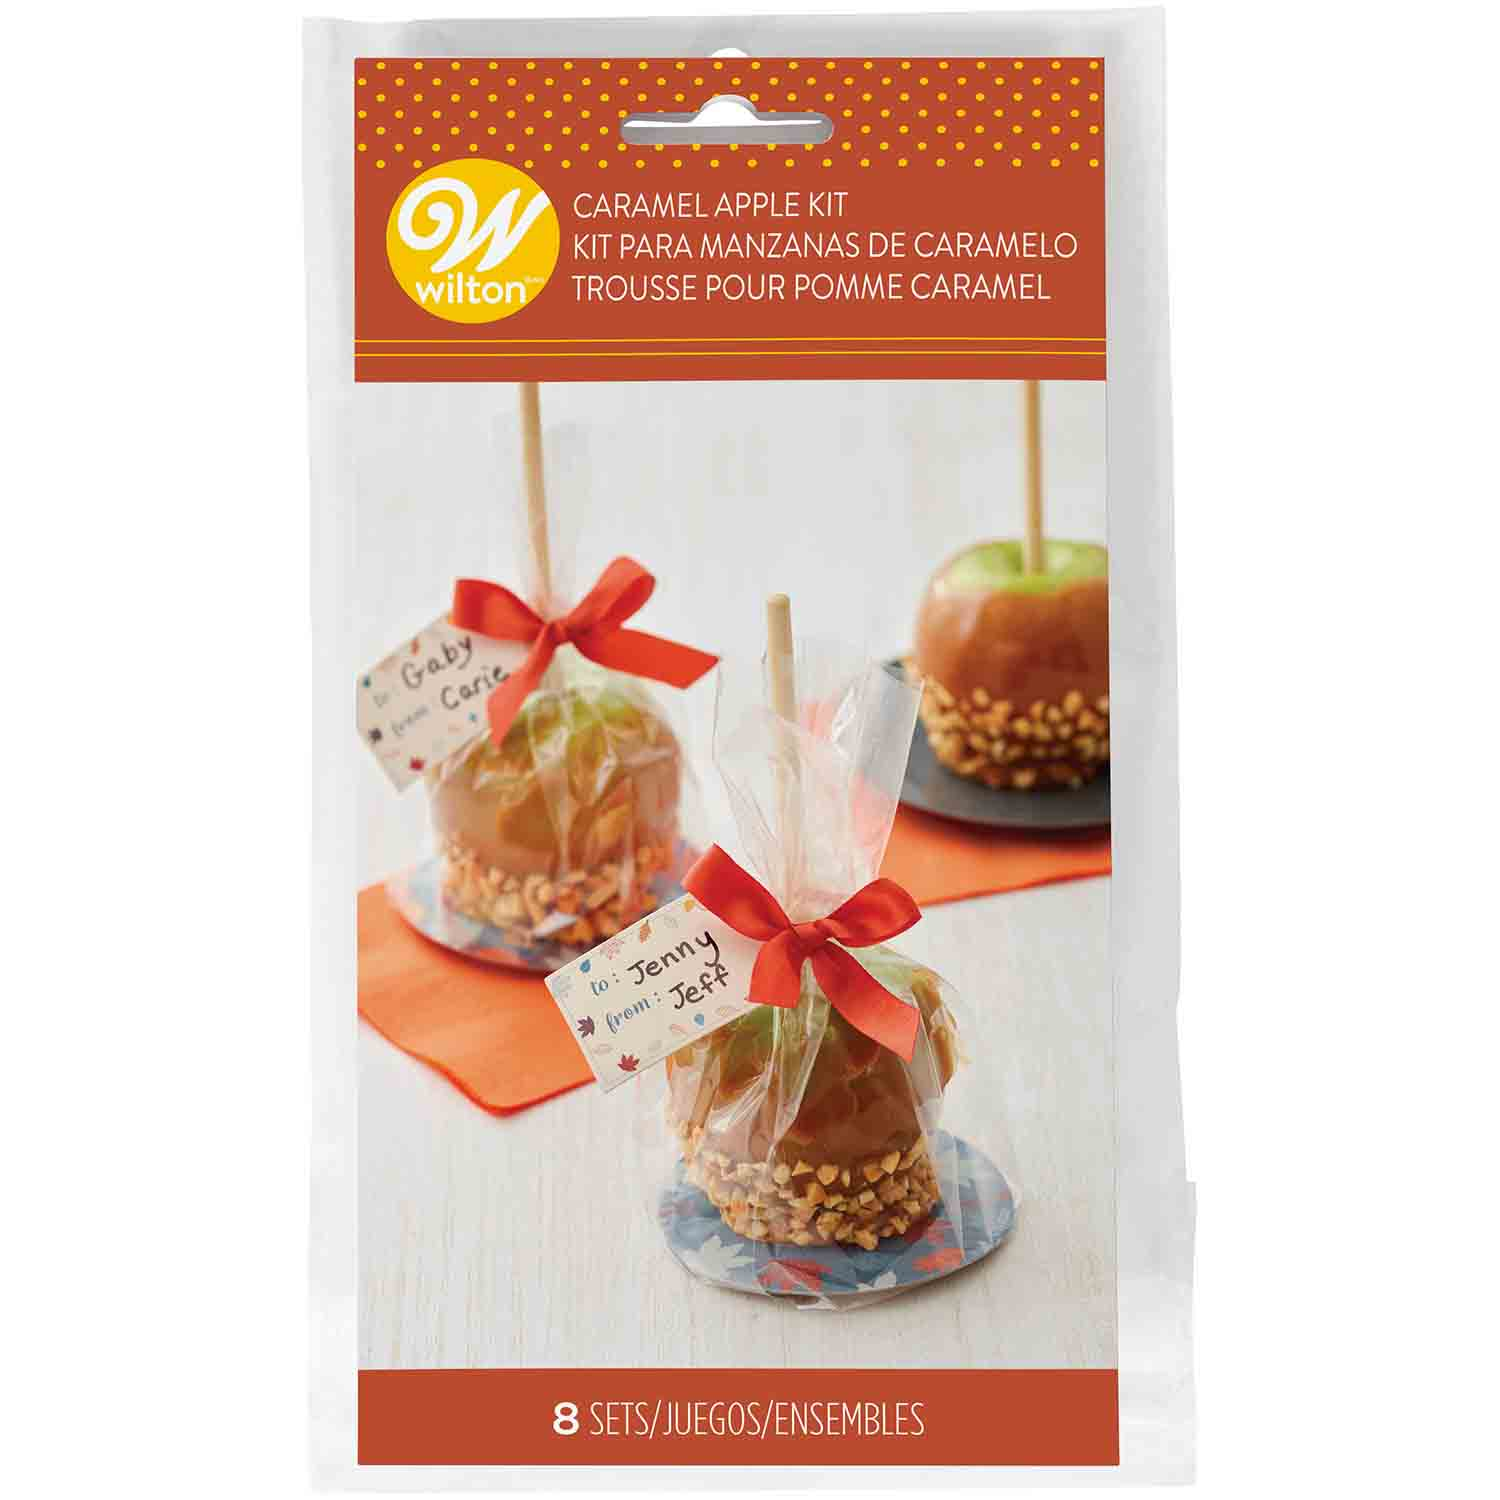 Caramel Apple Treat Kit